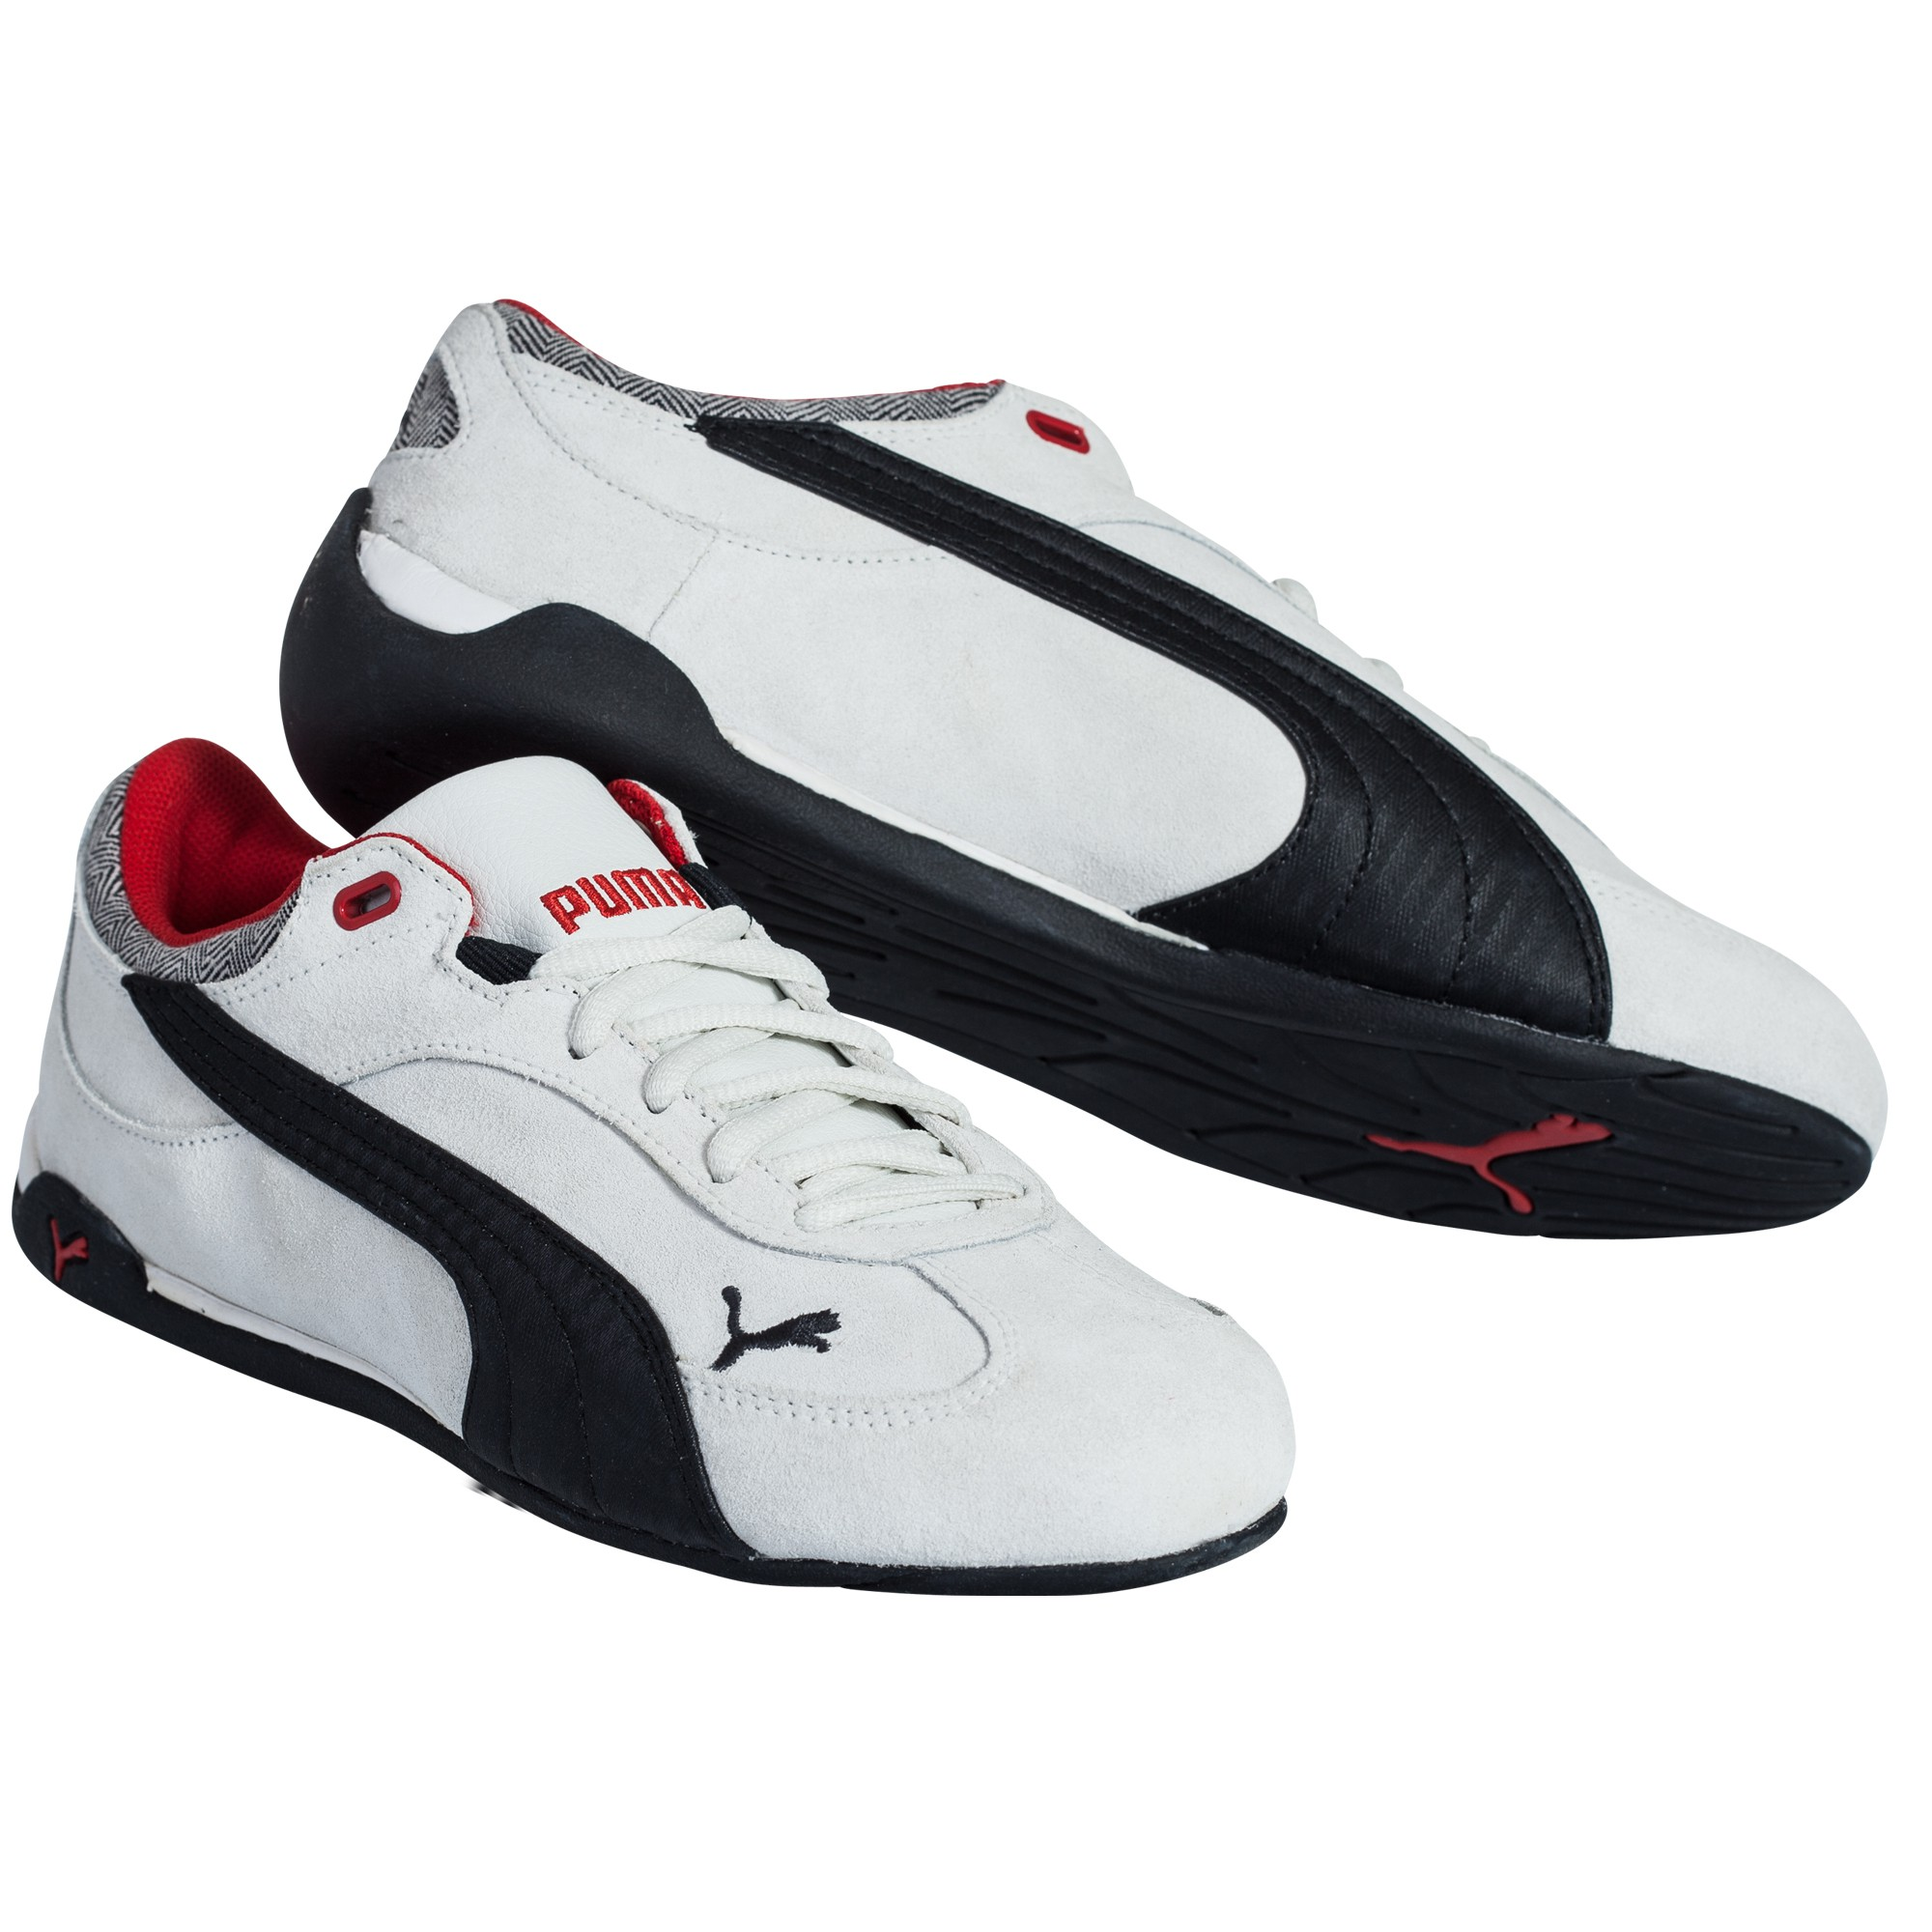 puma fast cat schuhe sneaker damen herren speed future drift neu gr 35 47 ebay. Black Bedroom Furniture Sets. Home Design Ideas